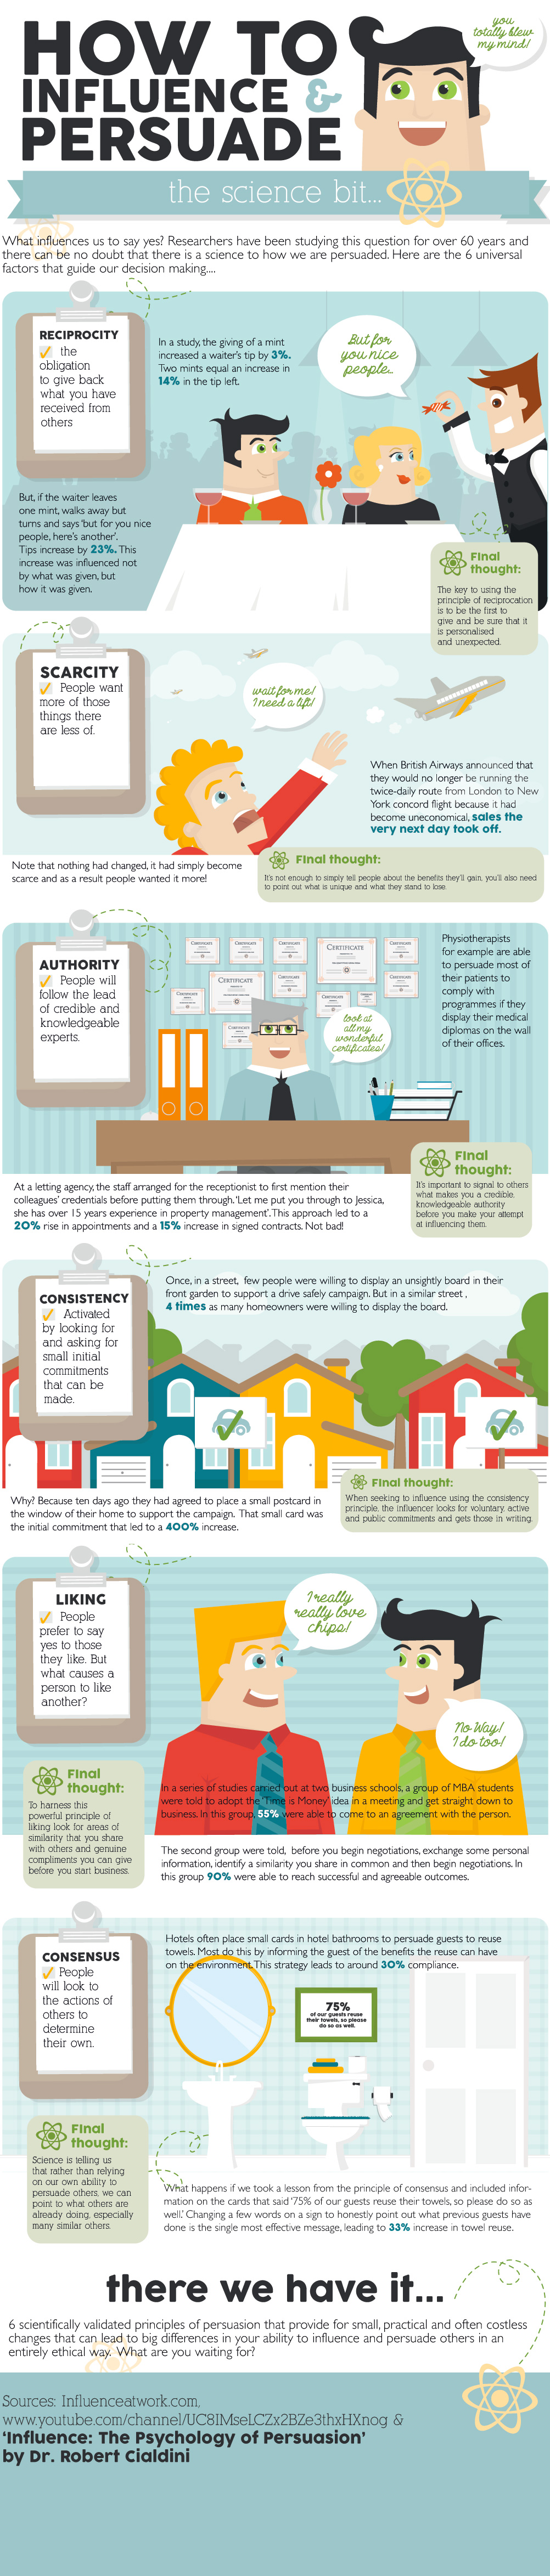 How To Influence & Persuade Infographic